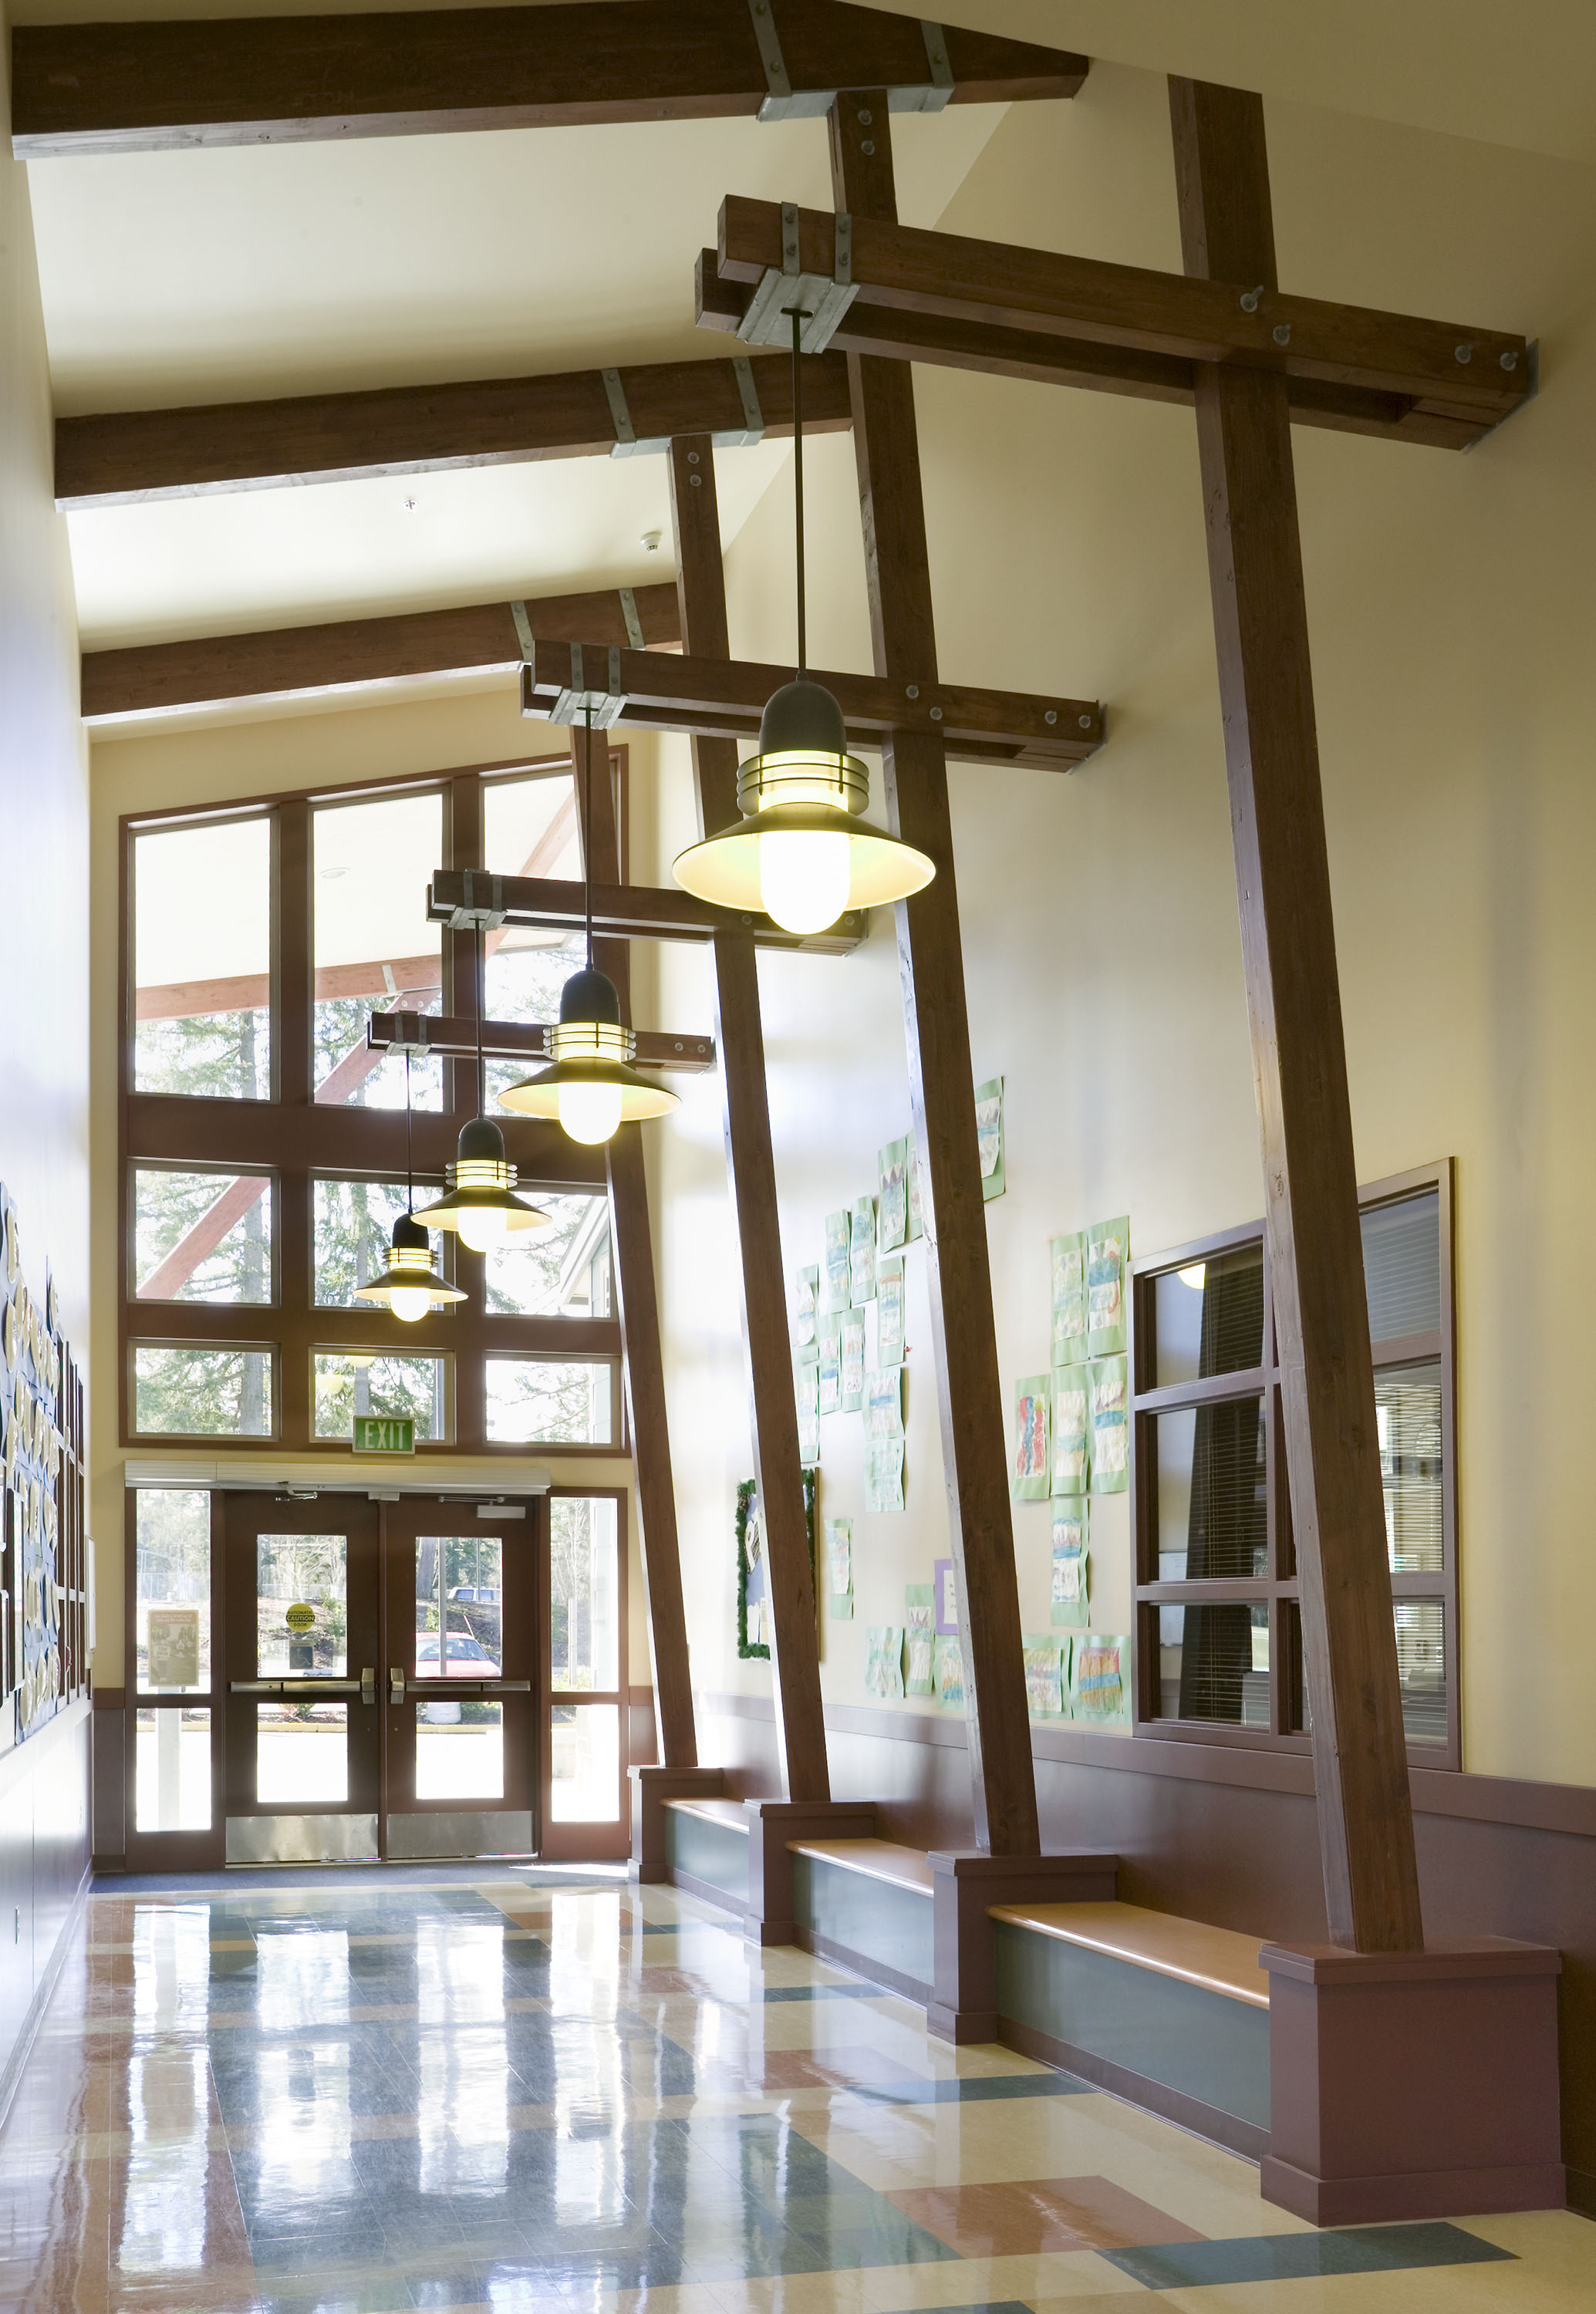 Hallway leading to outside with tall wood beams.